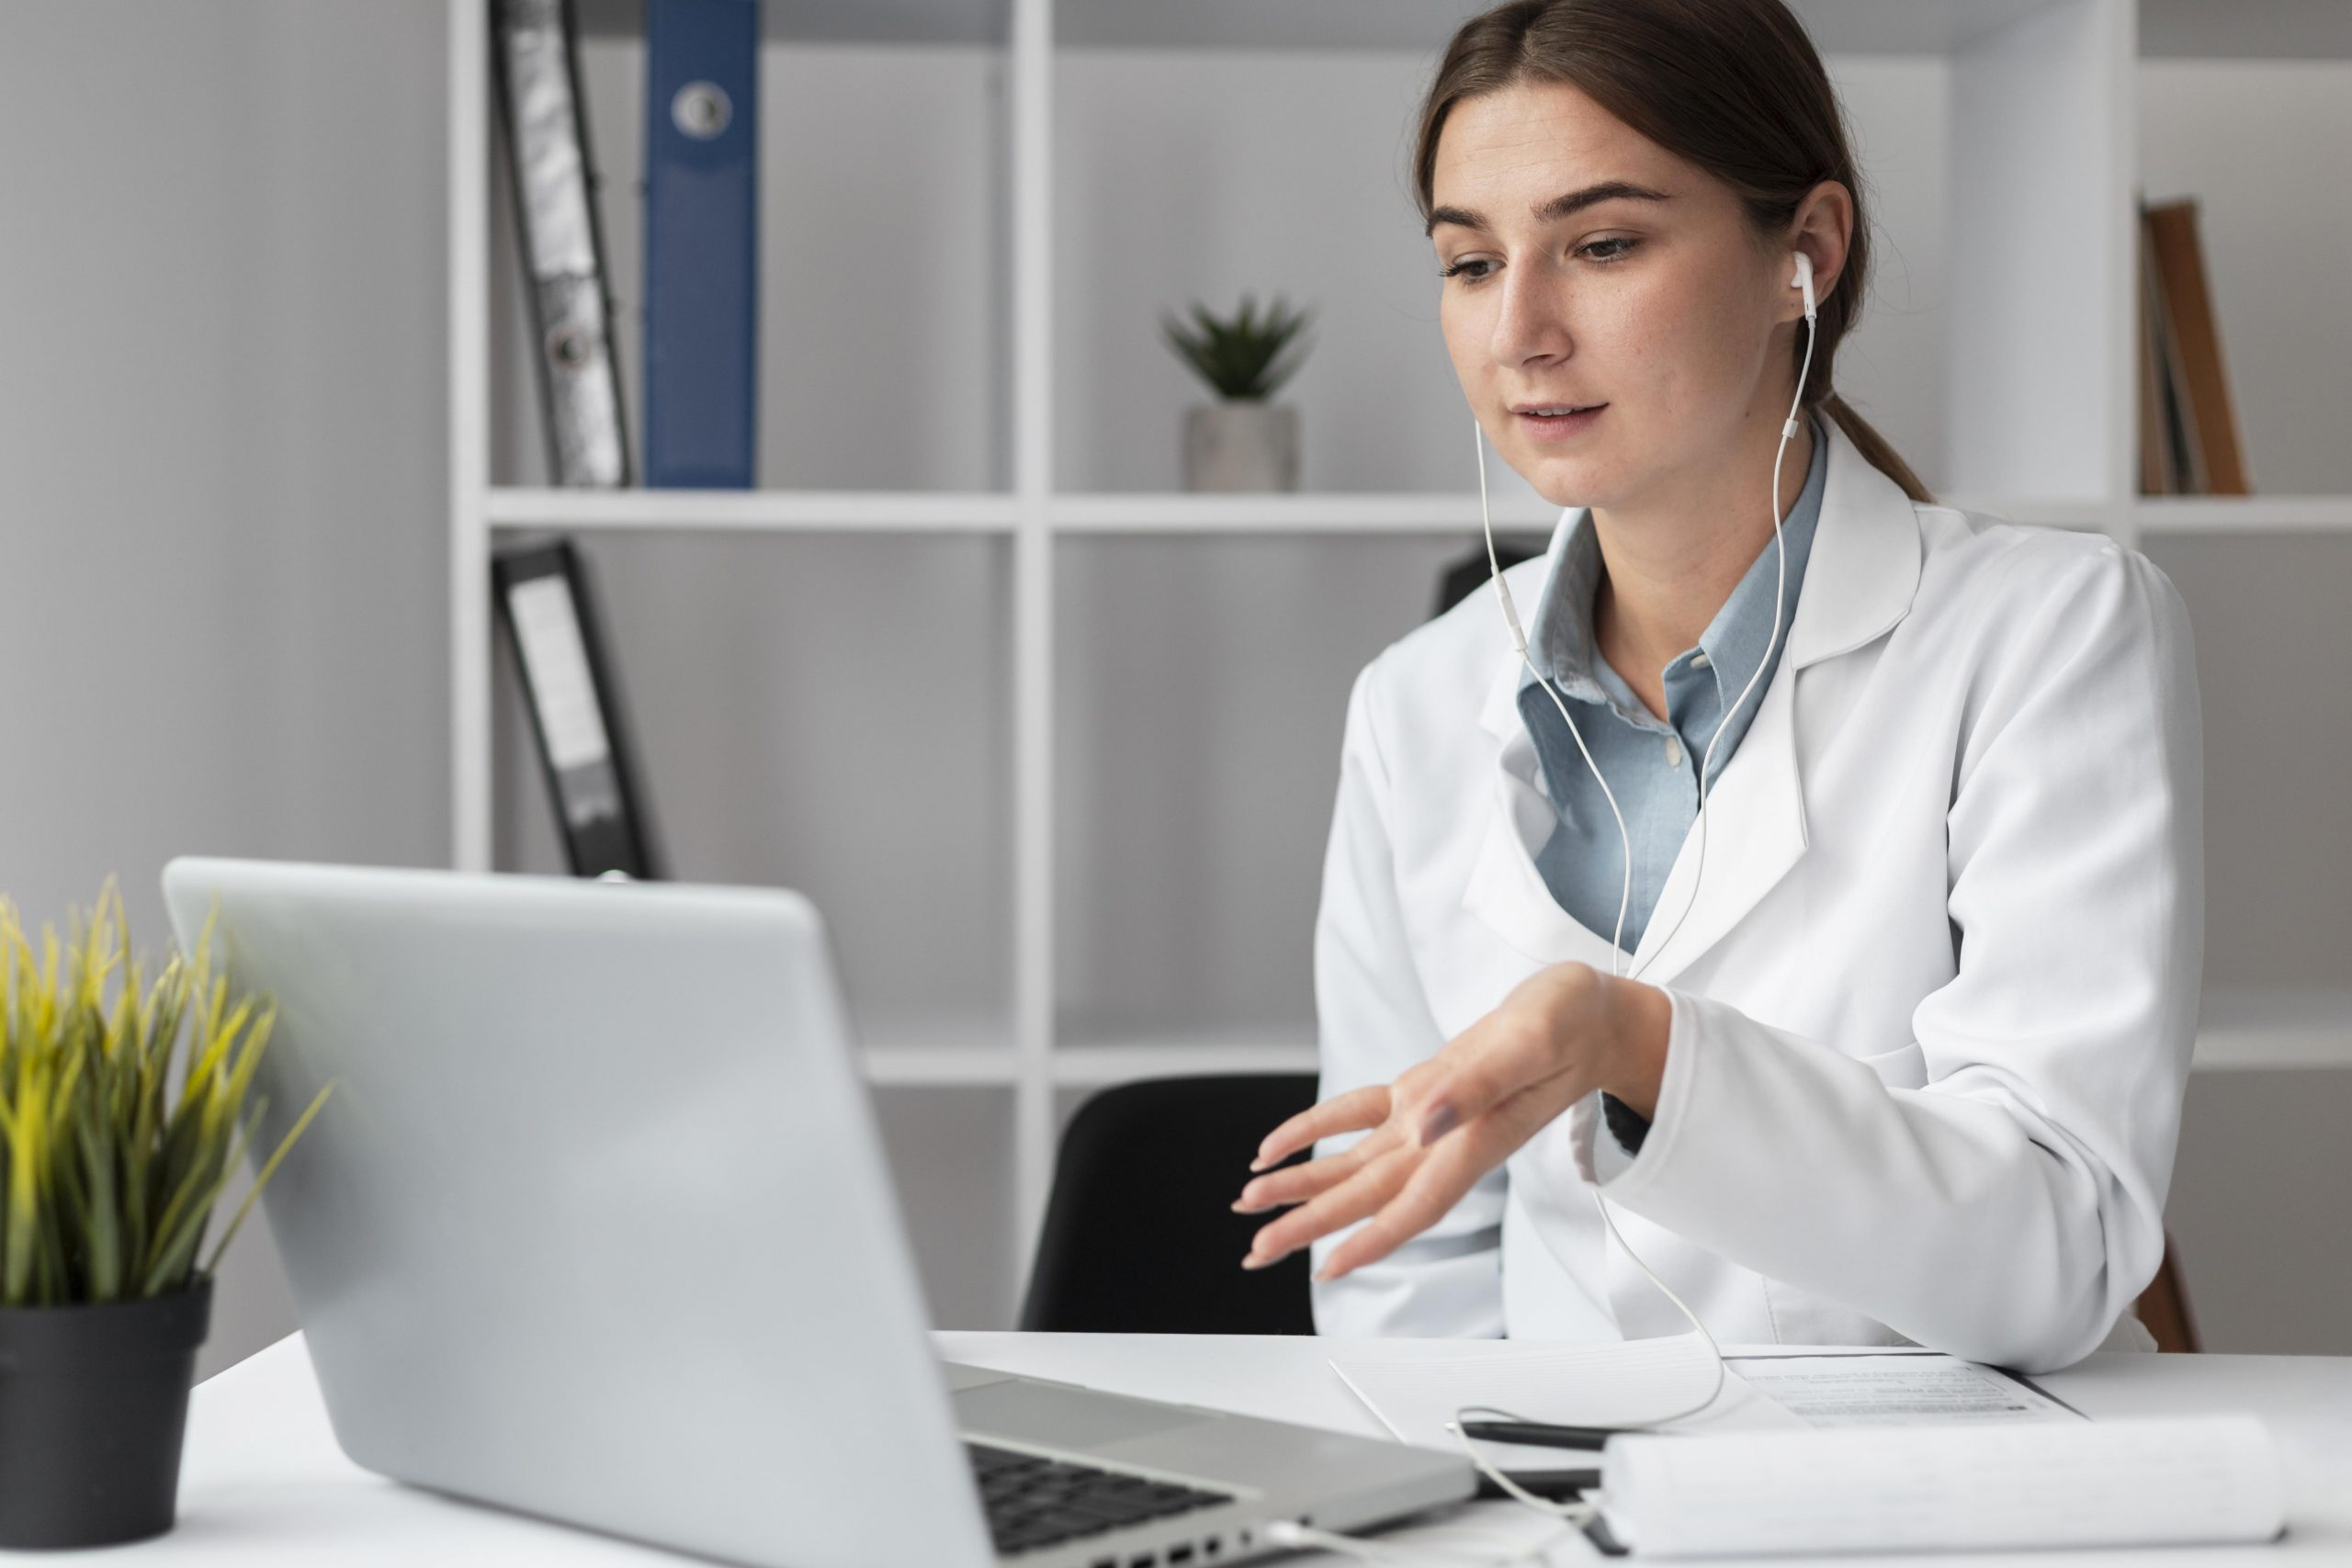 portrait-doctor-video-conferencing-clinic